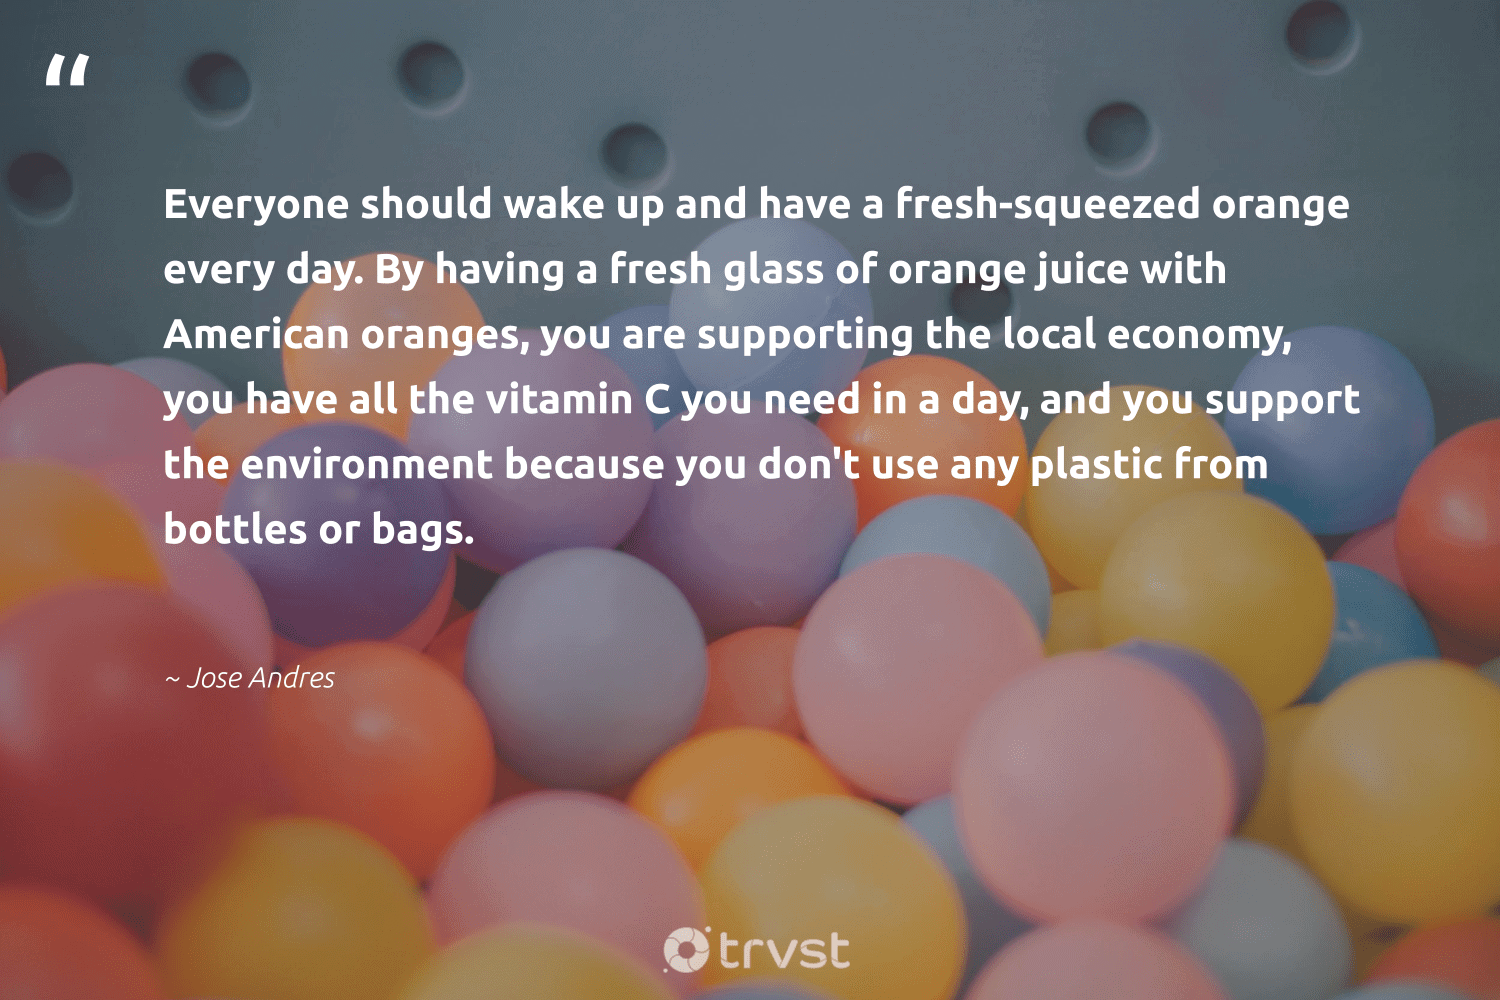 """""""Everyone should wake up and have a fresh-squeezed orange every day. By having a fresh glass of orange juice with American oranges, you are supporting the local economy, you have all the vitamin C you need in a day, and you support the environment because you don't use any plastic from bottles or bags.""""  - Jose Andres #trvst #quotes #plasticwaste #environment #plastic #scrapplastic #dosomething #sustainableliving #collectiveaction #microplastics #waste #greenliving"""